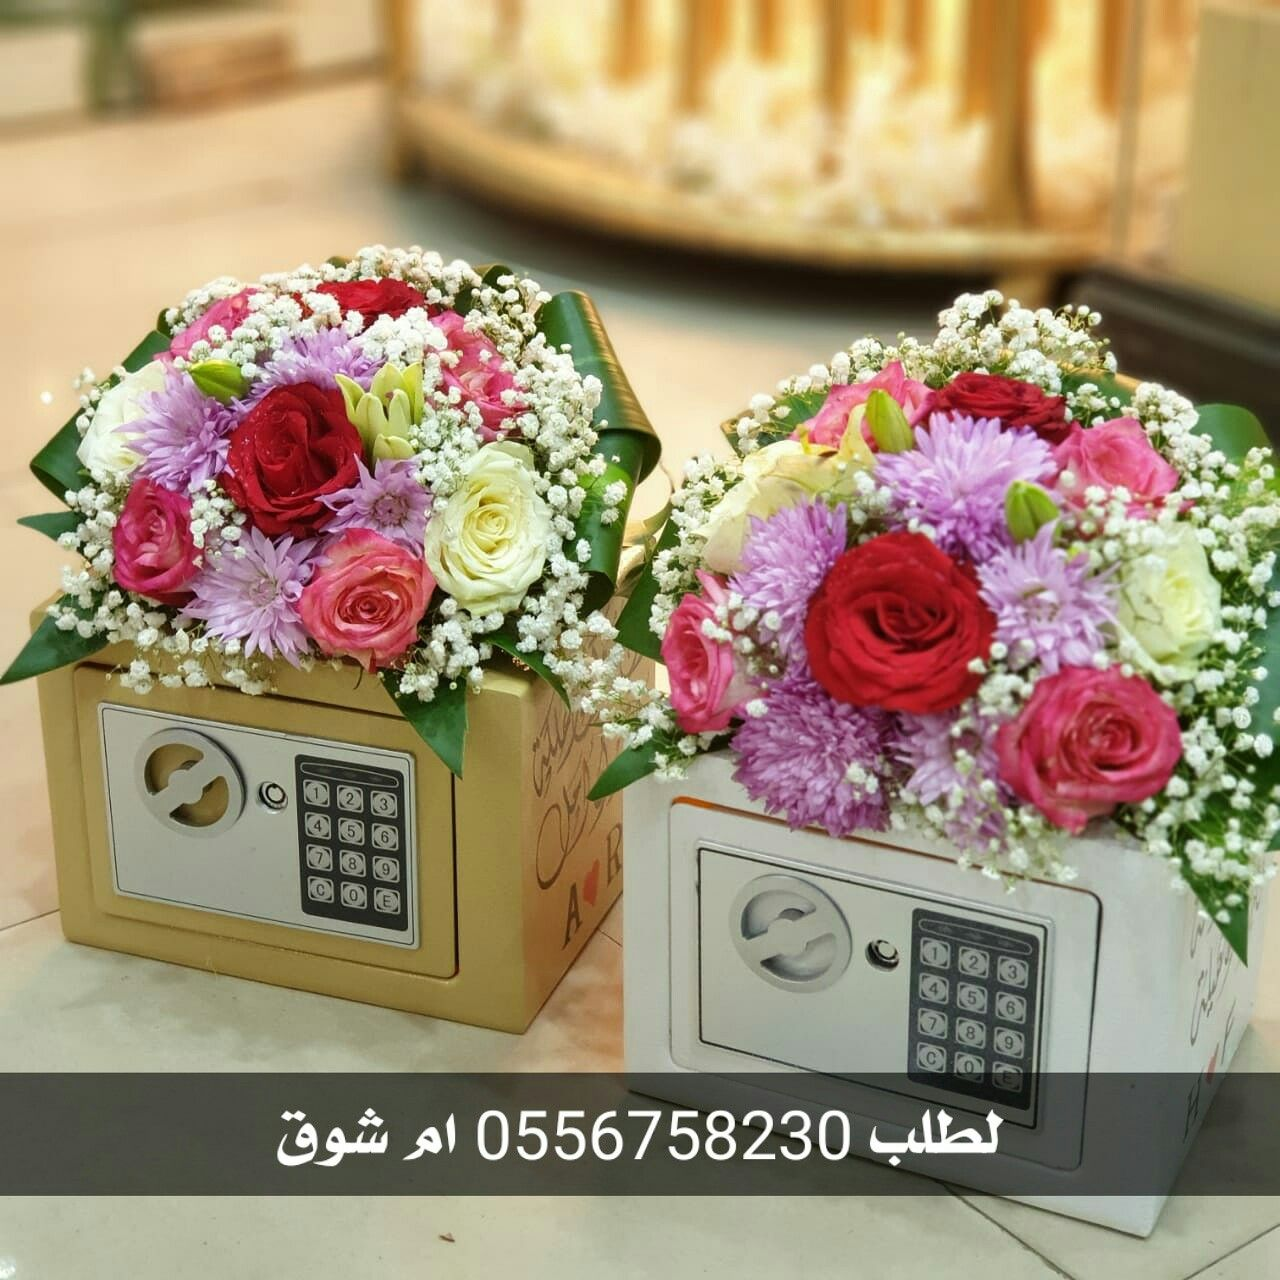 Pin By متجر نجران On طباعة هدايا و مناسبات Decorative Boxes Floral Floral Wreath